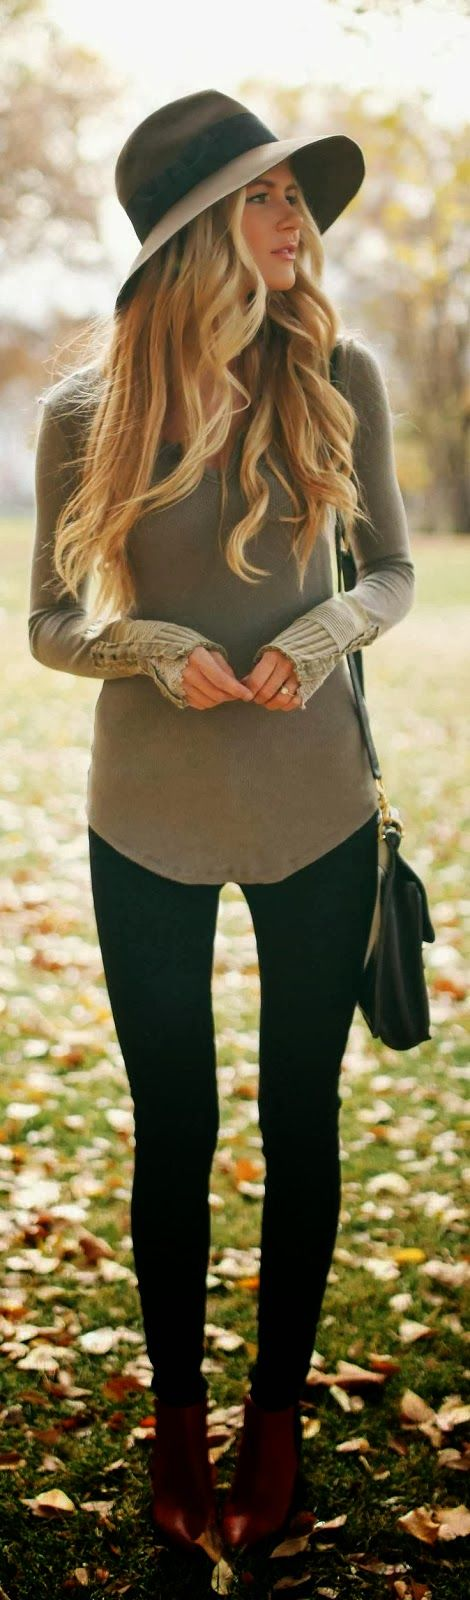 Cute Shirt With Black Leggings And Hat Chelsea, Chelsea Hair, Haris Salon Chelsea, Winter Hair inspiration